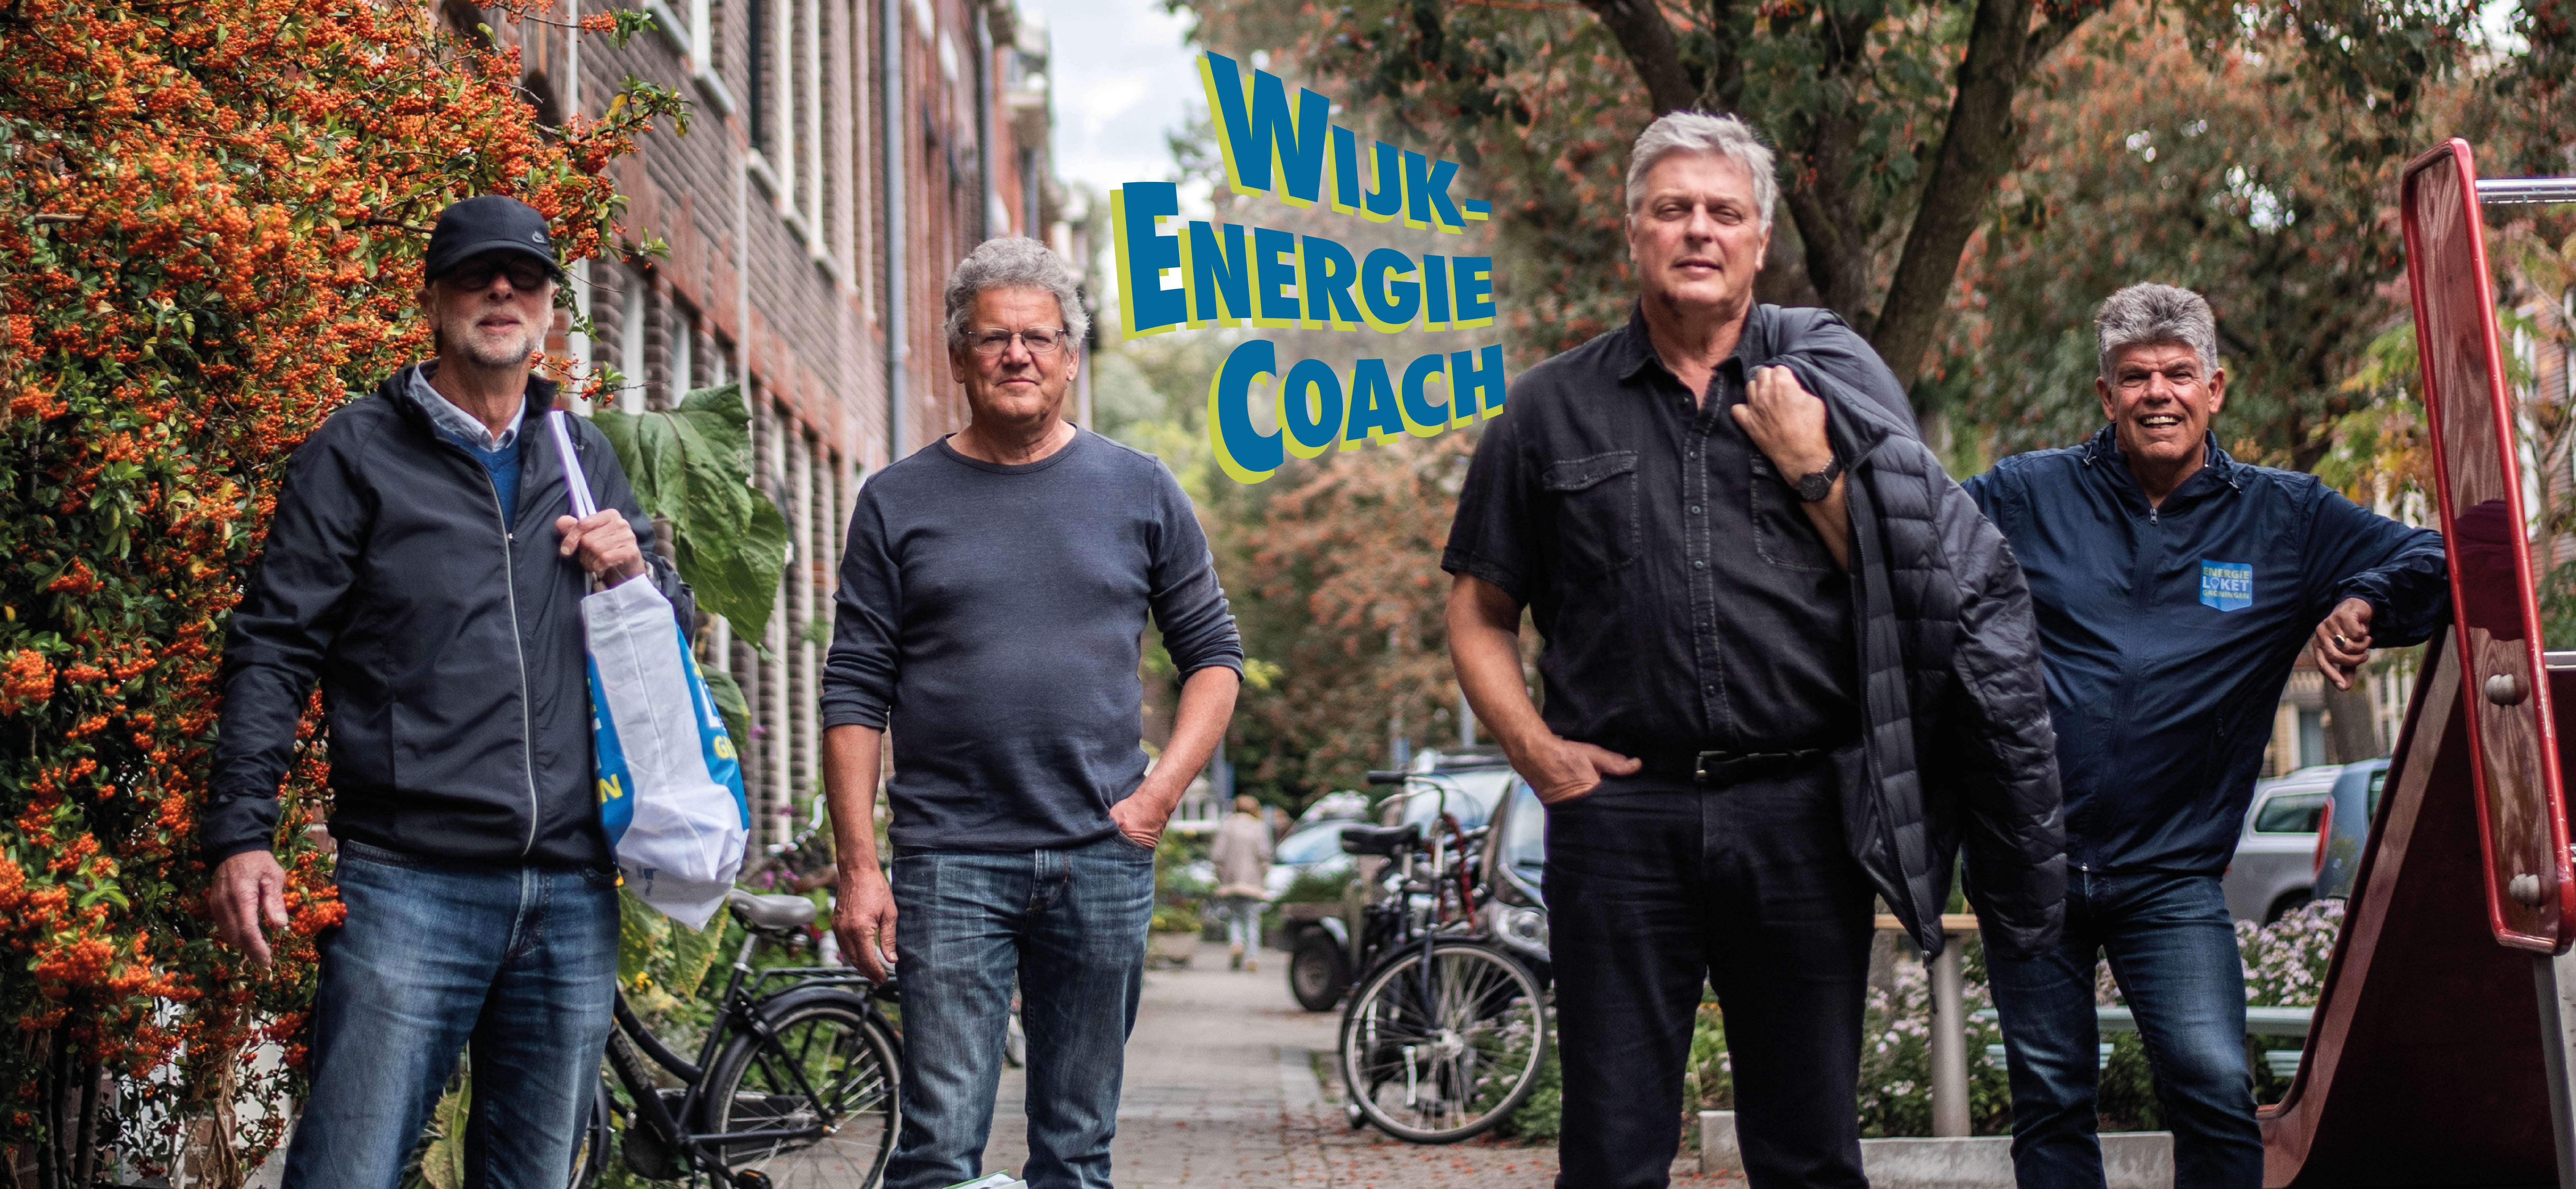 energiecoaches